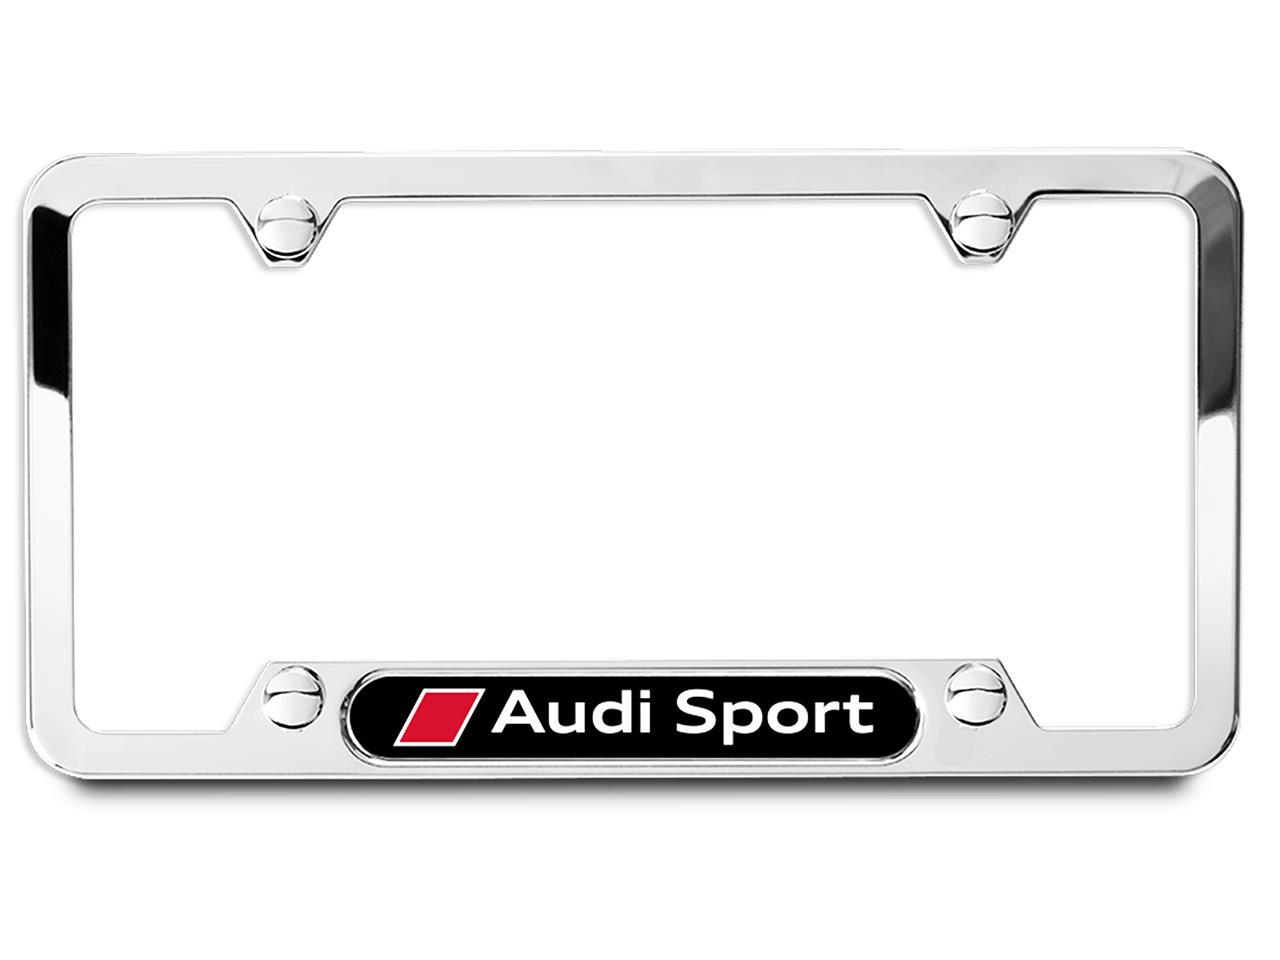 2017 Audi Q7 License Plate Frame With Audi Sport Logo